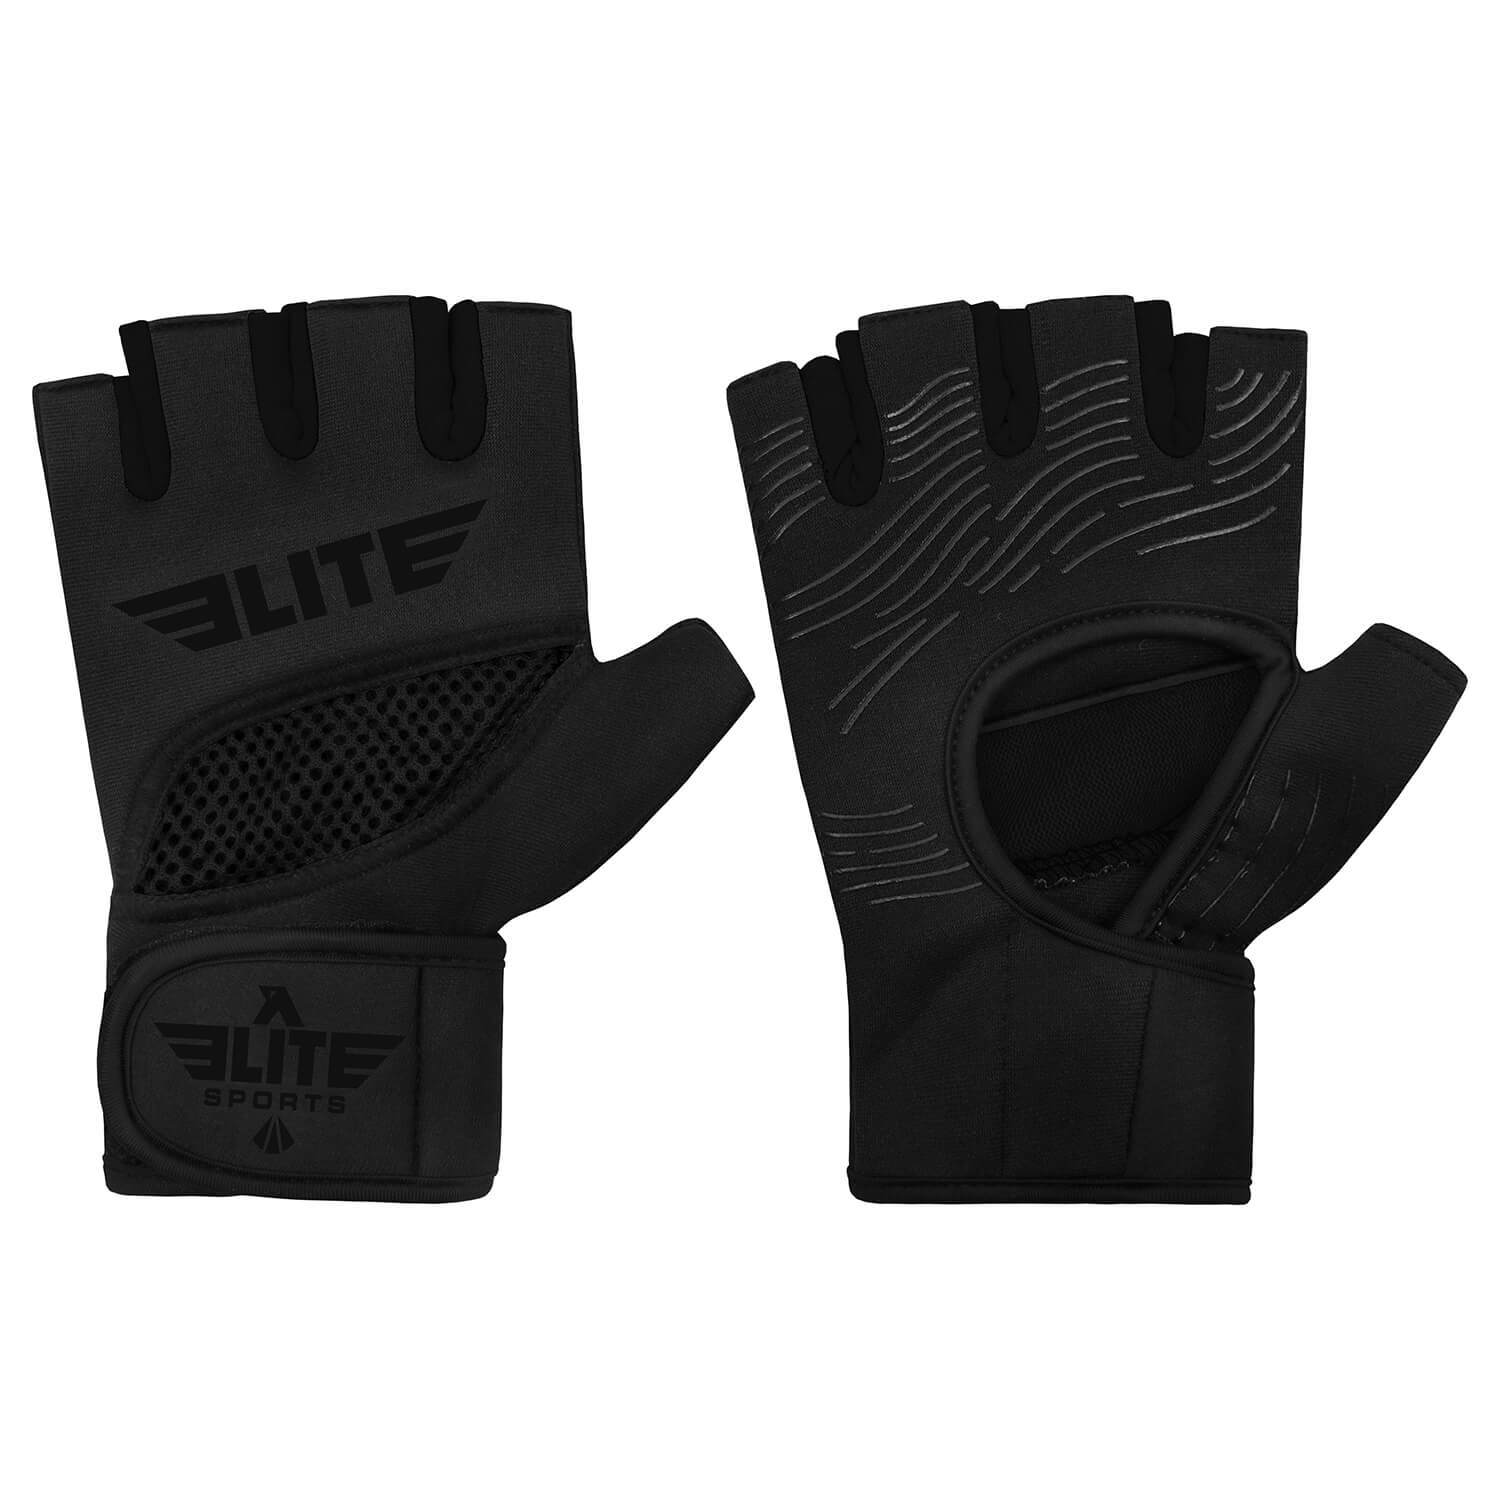 Elite Sports Black Cross Training Gel Hand Wraps